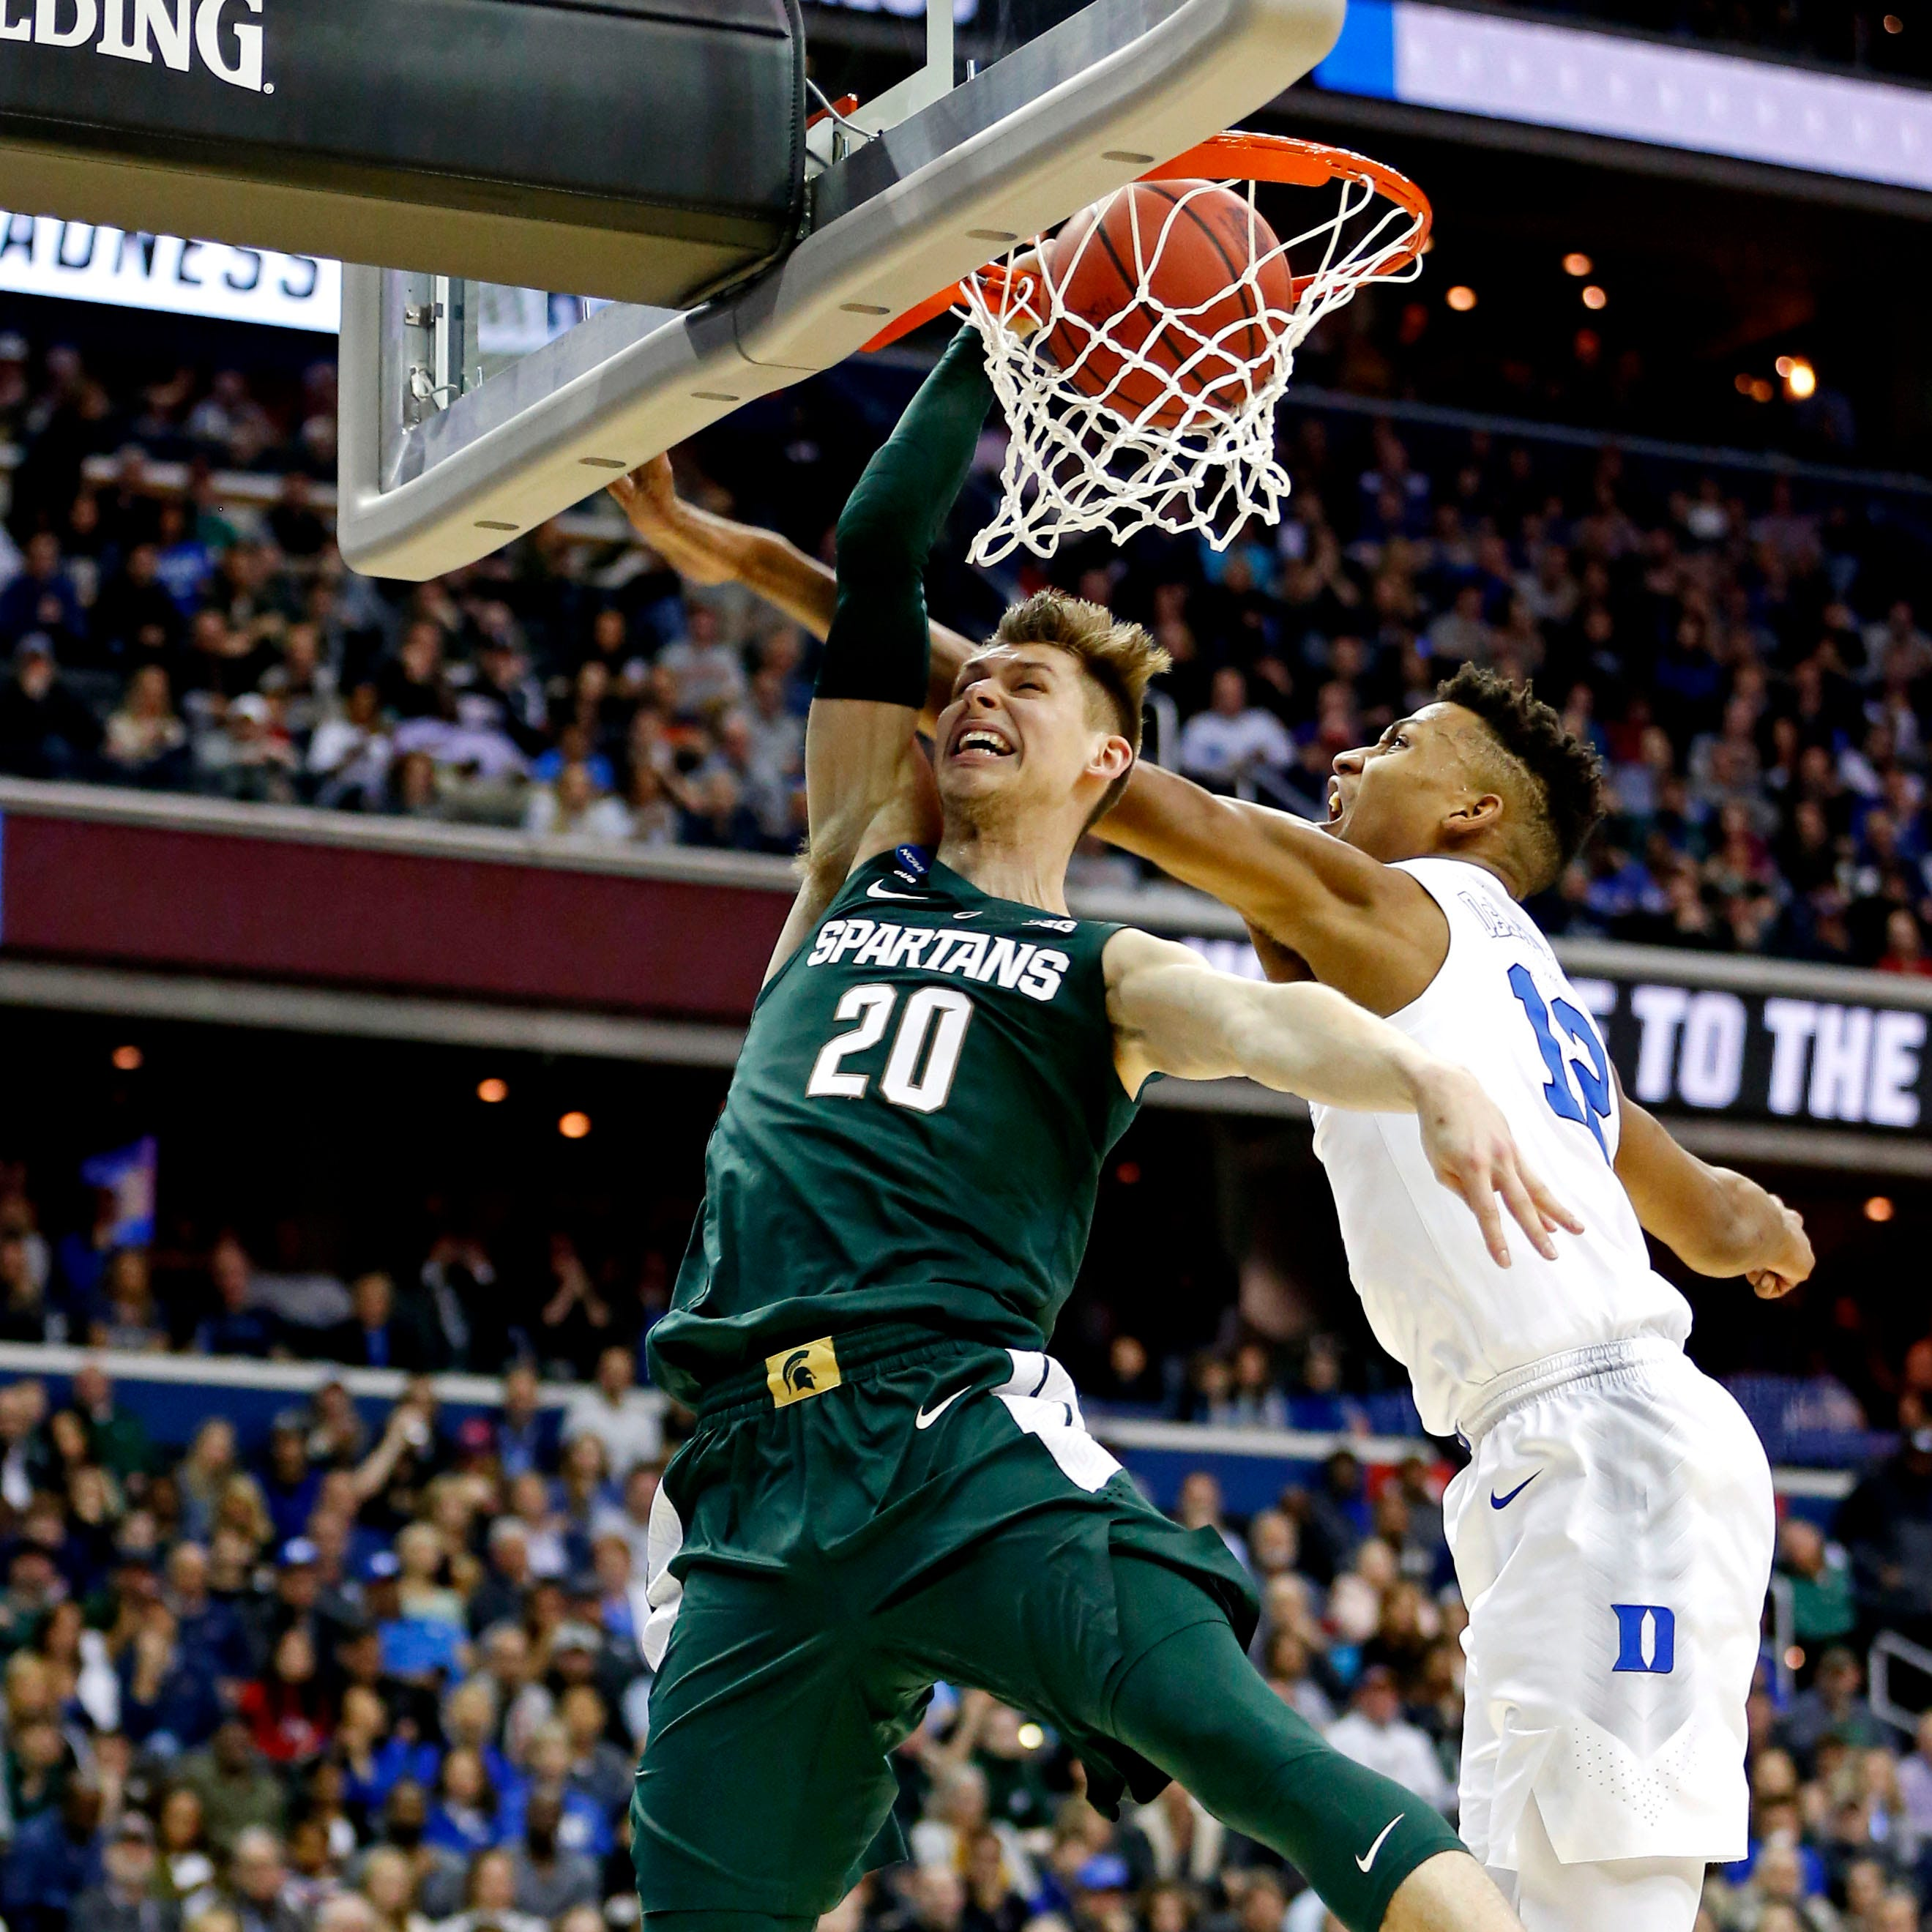 Michigan State basketball's Matt McQuaid avoids Final Four scarlet letter